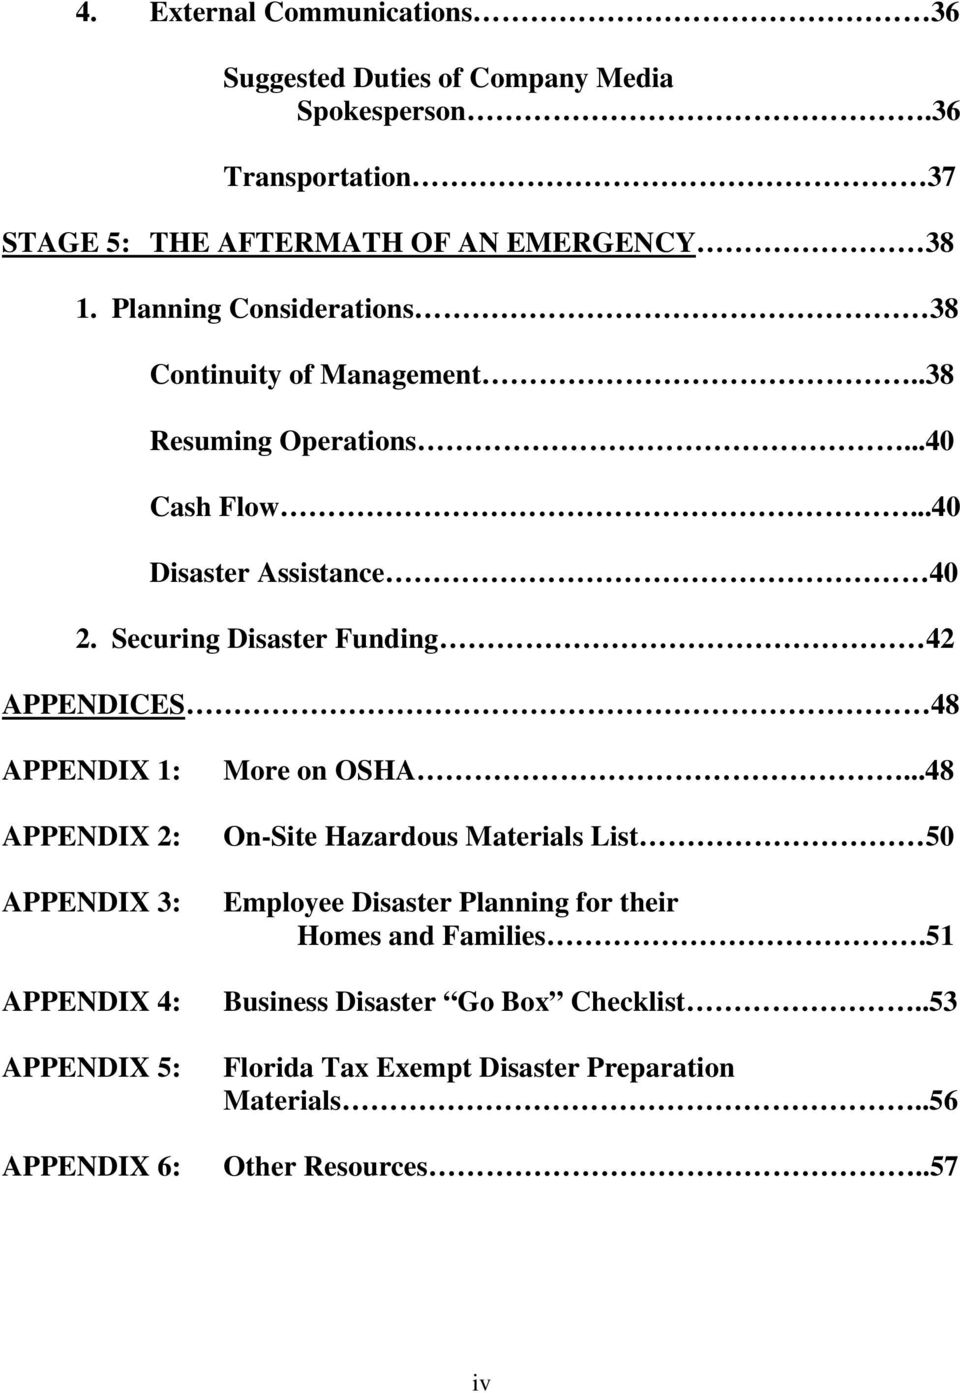 Securing Disaster Funding 42 APPENDICES 48 APPENDIX 1: APPENDIX 2: APPENDIX 3: APPENDIX 4: APPENDIX 5: APPENDIX 6: More on OSHA.